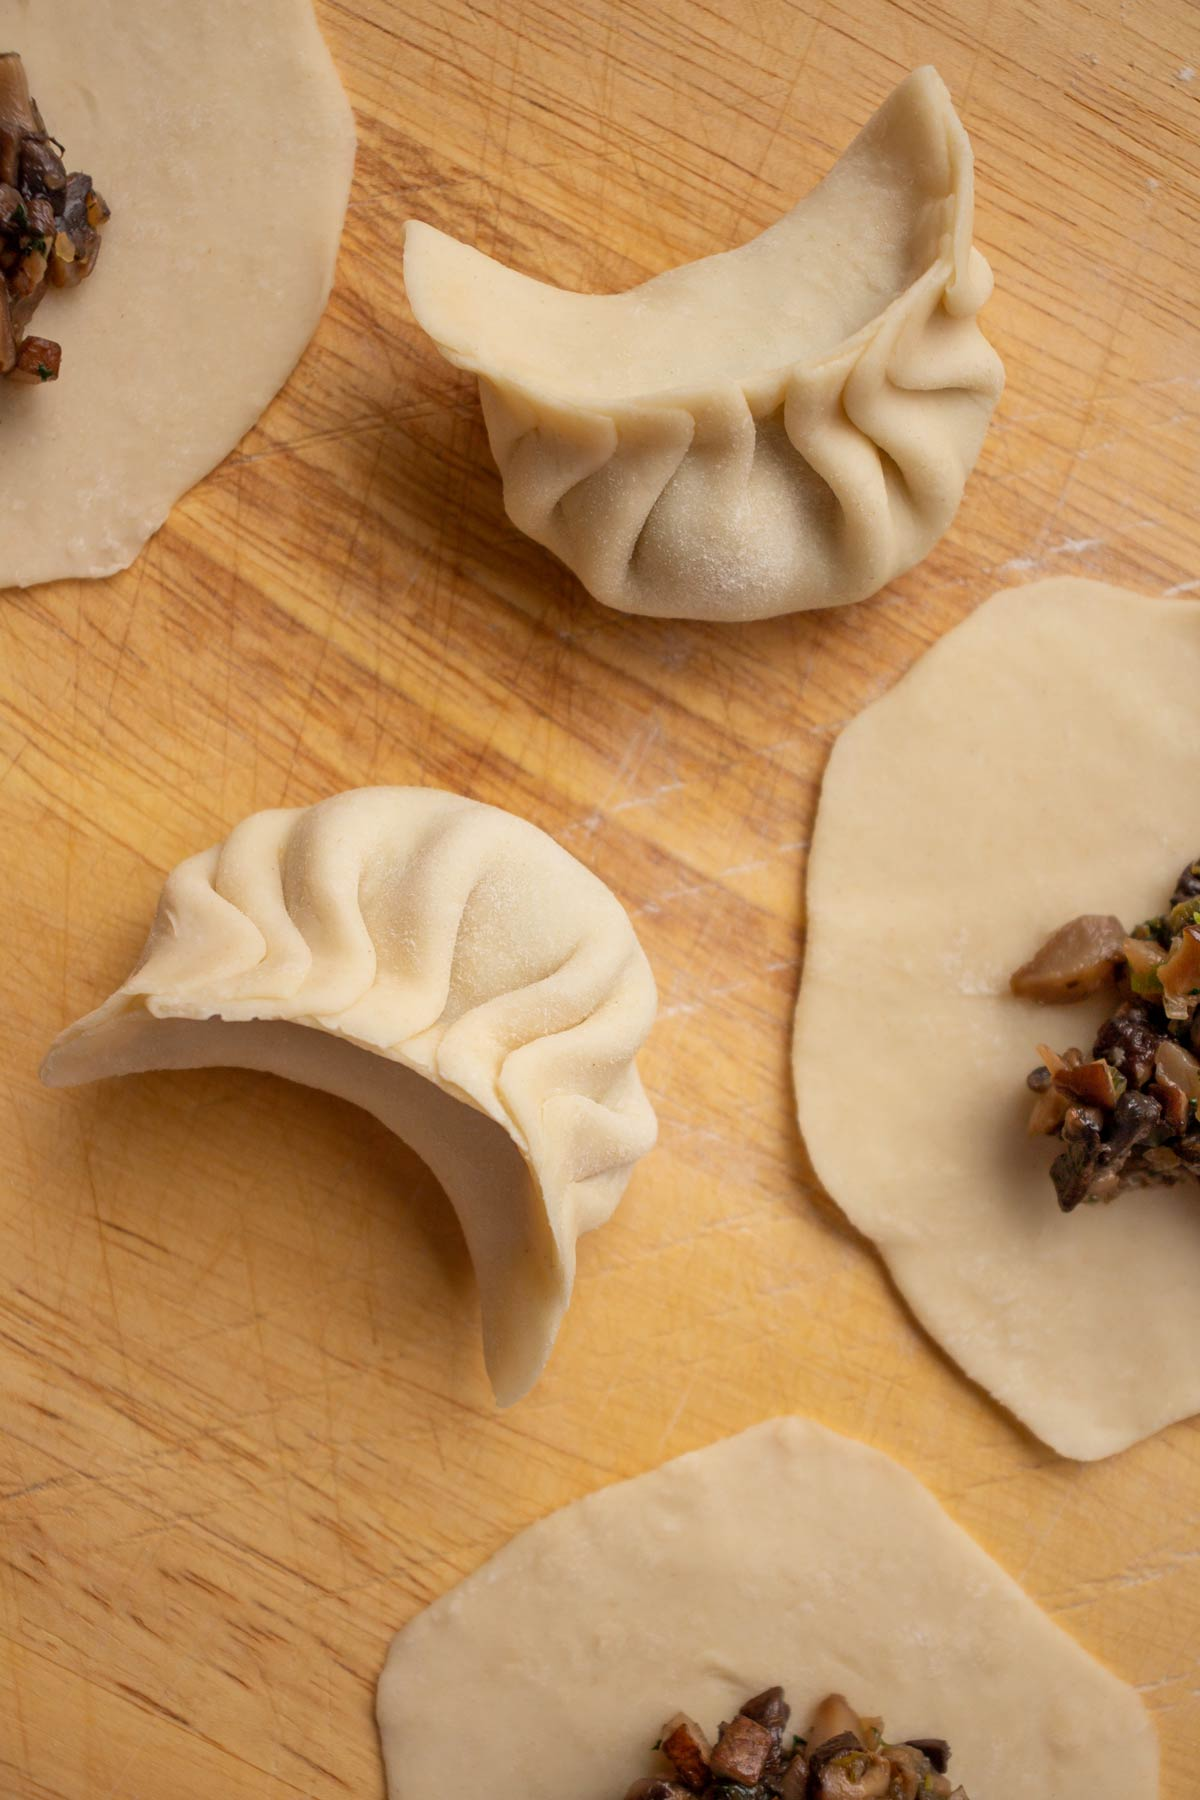 Two pleated dumplings on a wooden surface.